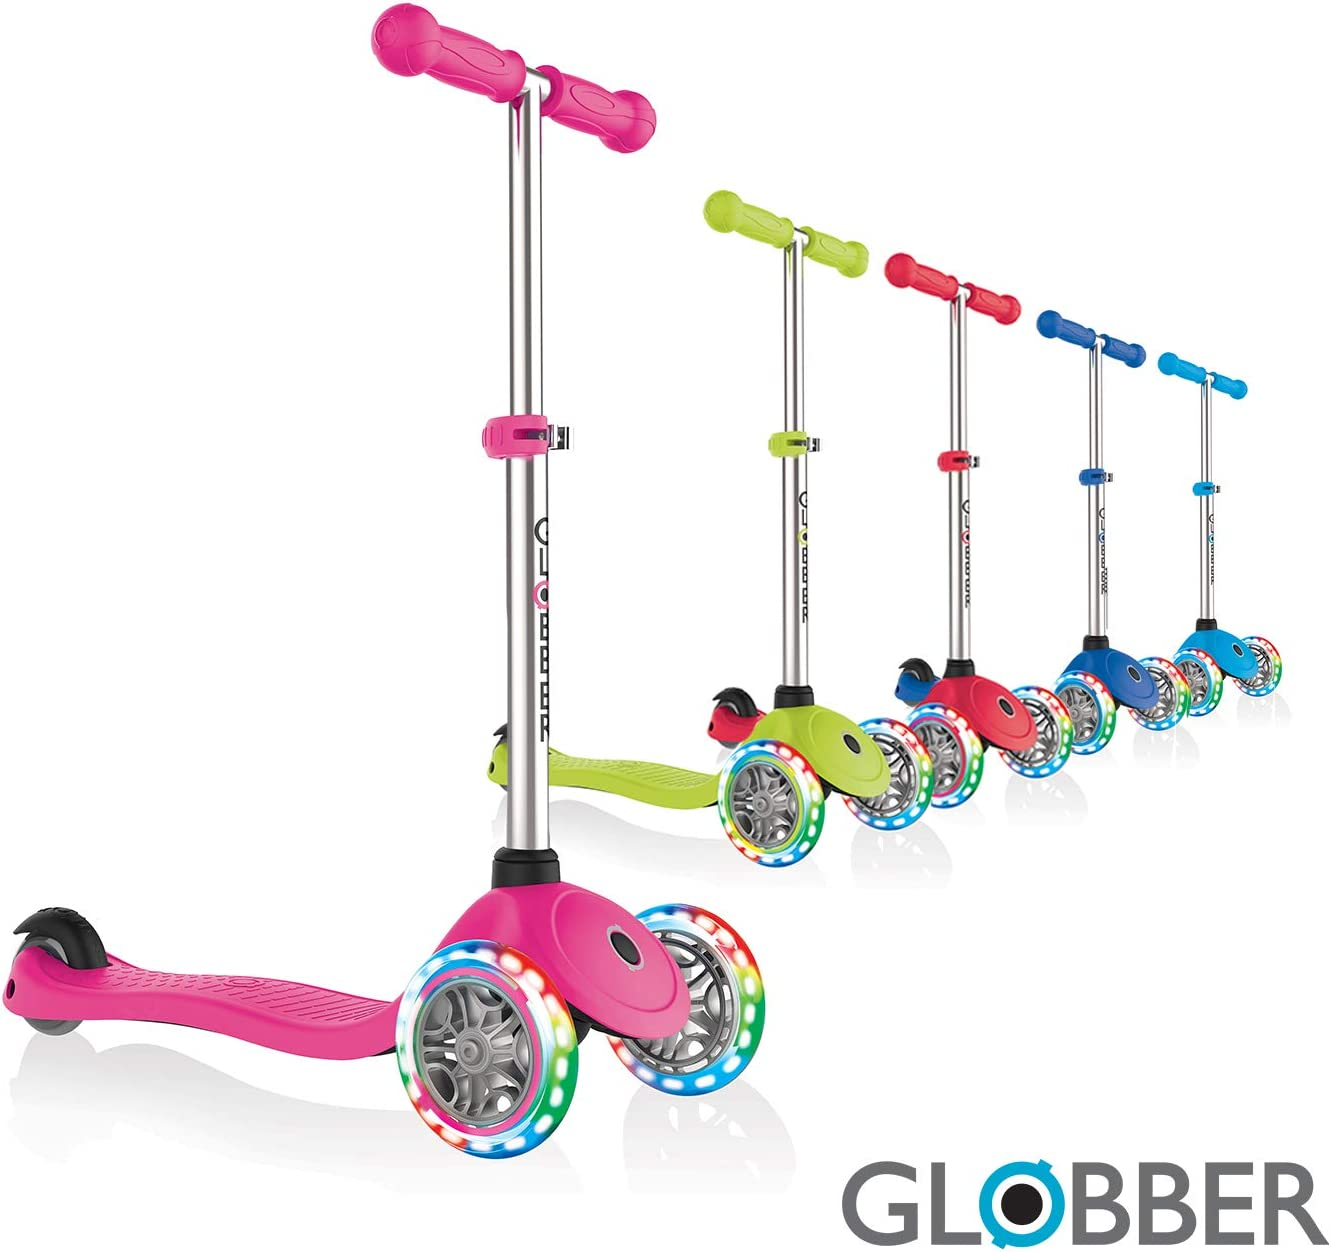 Globber V2 3-Wheel 3 Adjustable Height Scooter W Flashing Lights Zero Assembly Patented Steering Lock Great for Kids Toddlers Girls or Boys Reinforced Body Supports Up to 110lbs